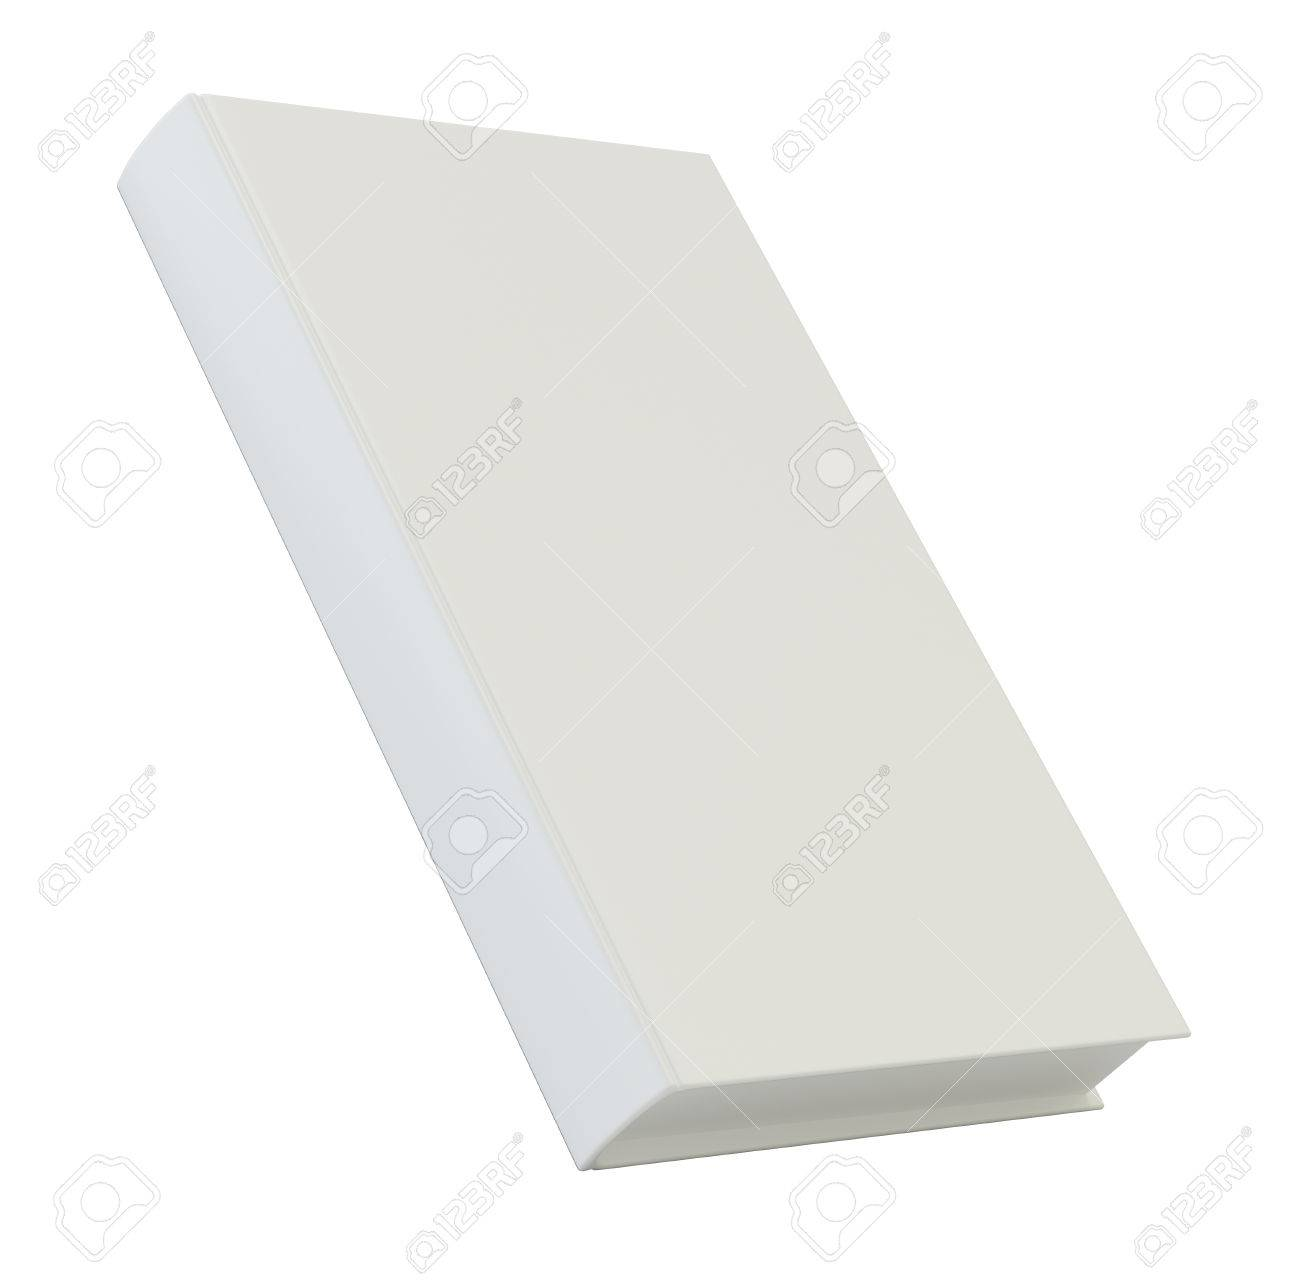 Blank Vertical Book Cover Template 3d Rendering Isolated On Stock